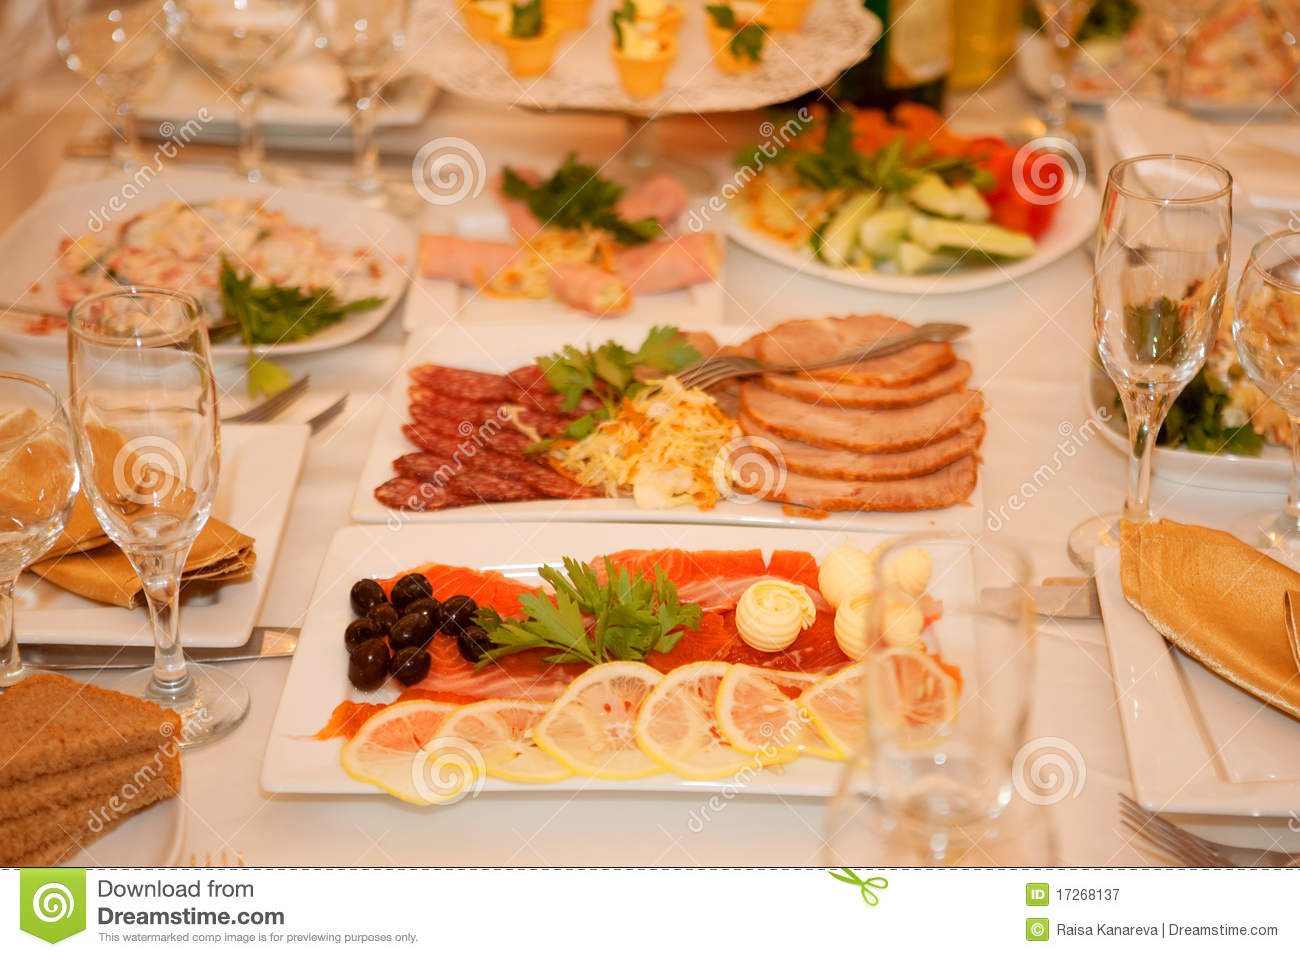 Banquet Table With Food Royalty Free Stock Photography   Image